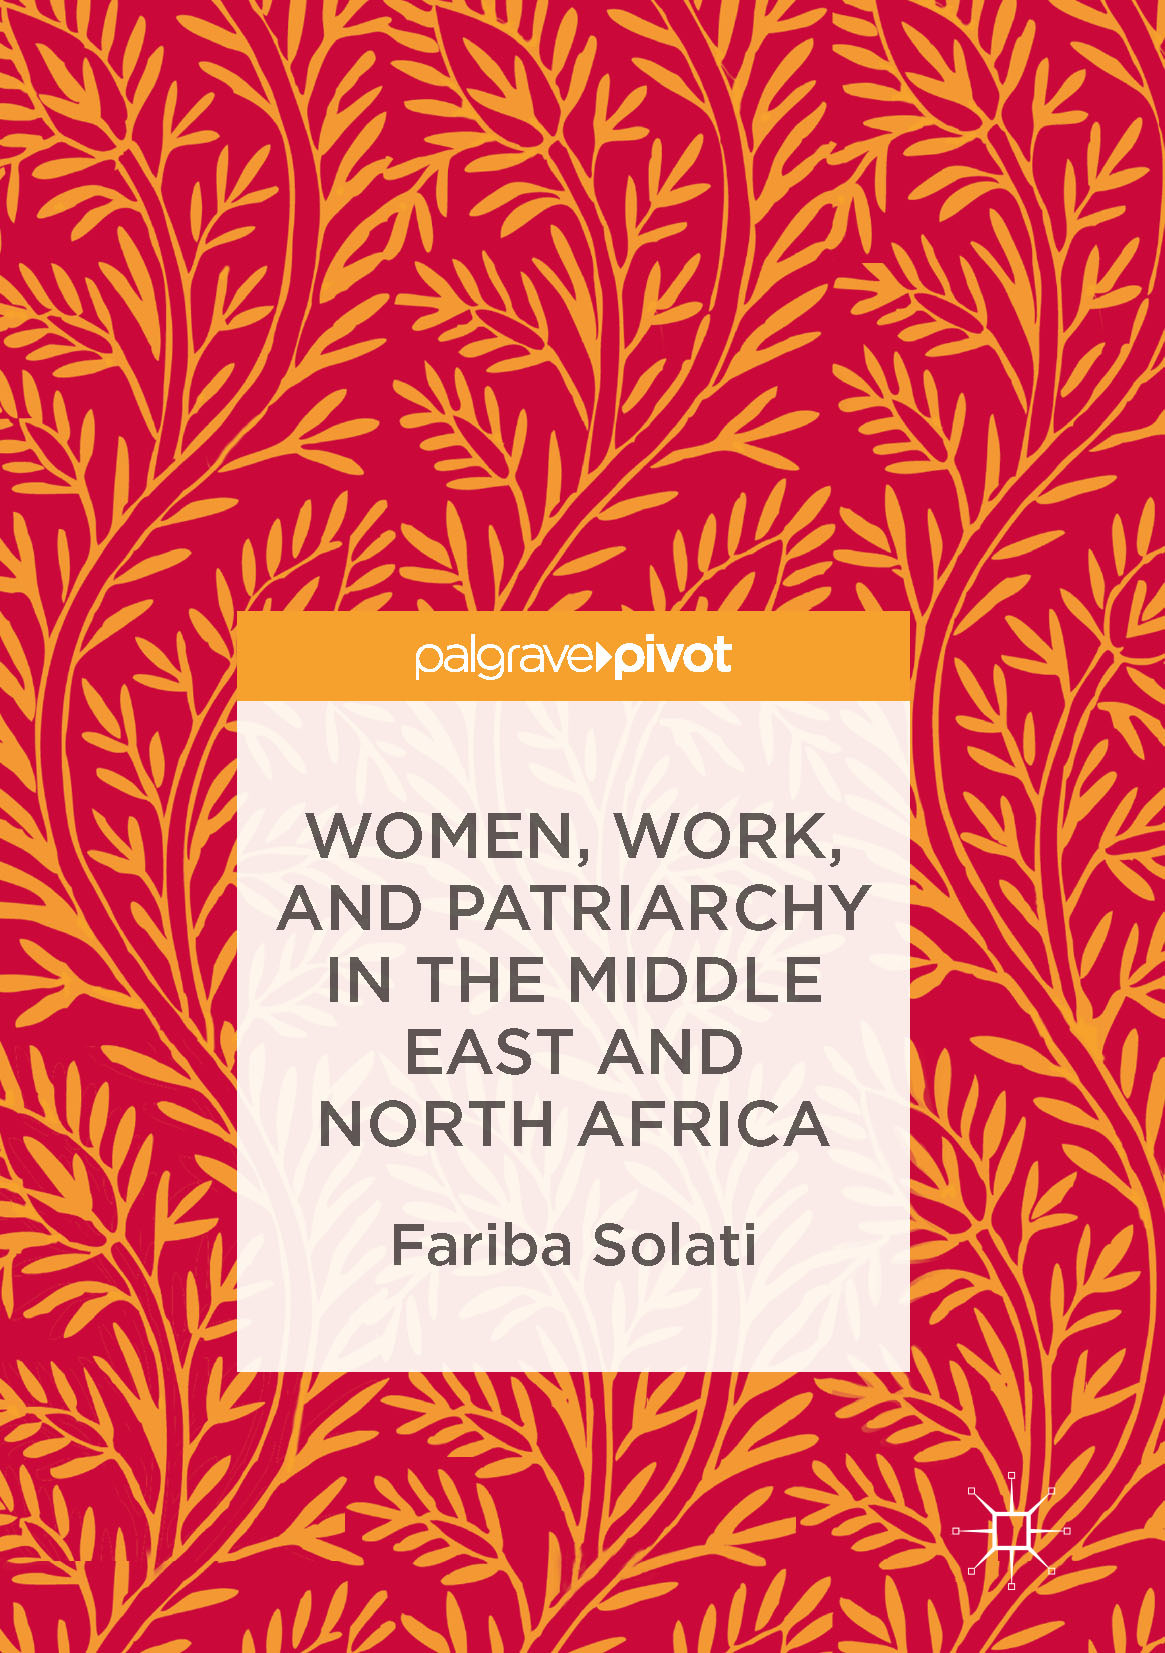 Solati, Fariba - Women, Work, and Patriarchy in the Middle East and North Africa, ebook